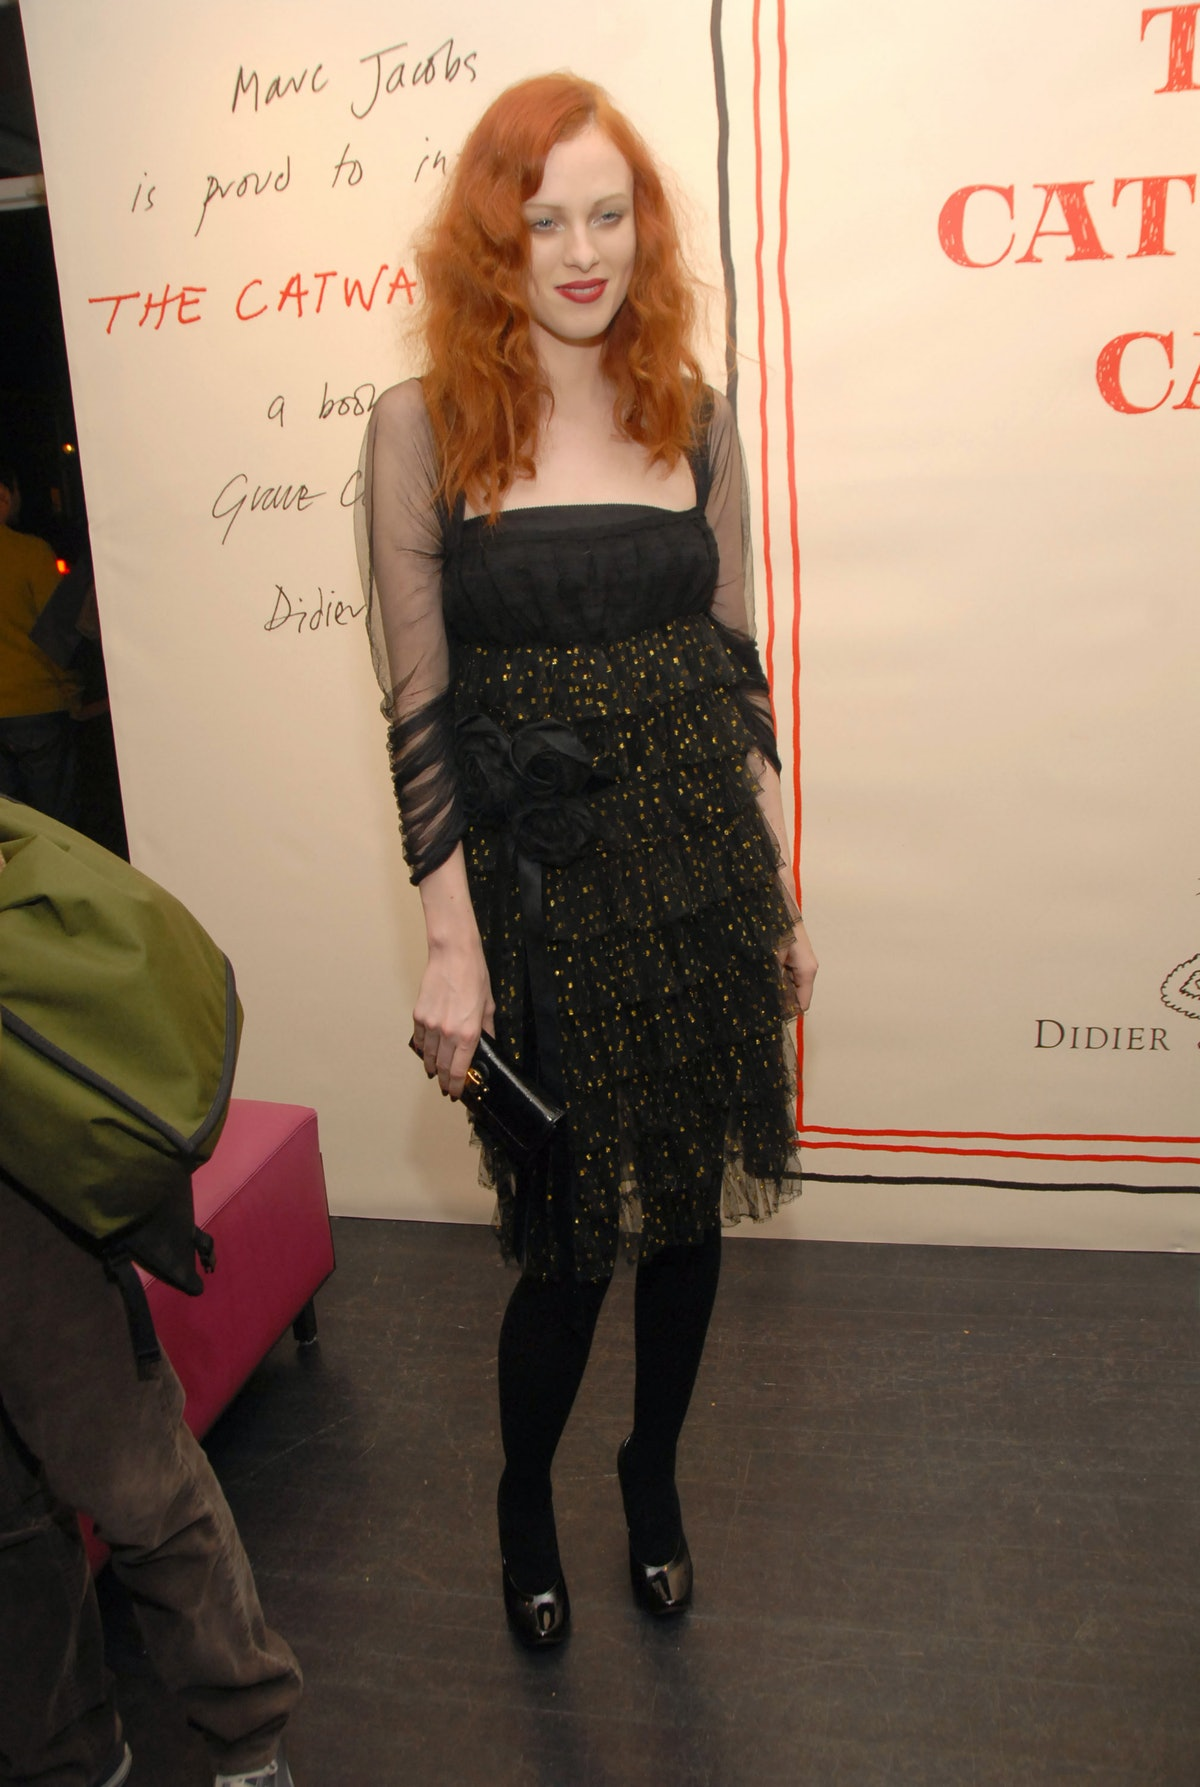 """Marc Jacobs and Robert Duffy Host Book Signing of """"The Catwalk Cats"""" by Grace Coddington"""